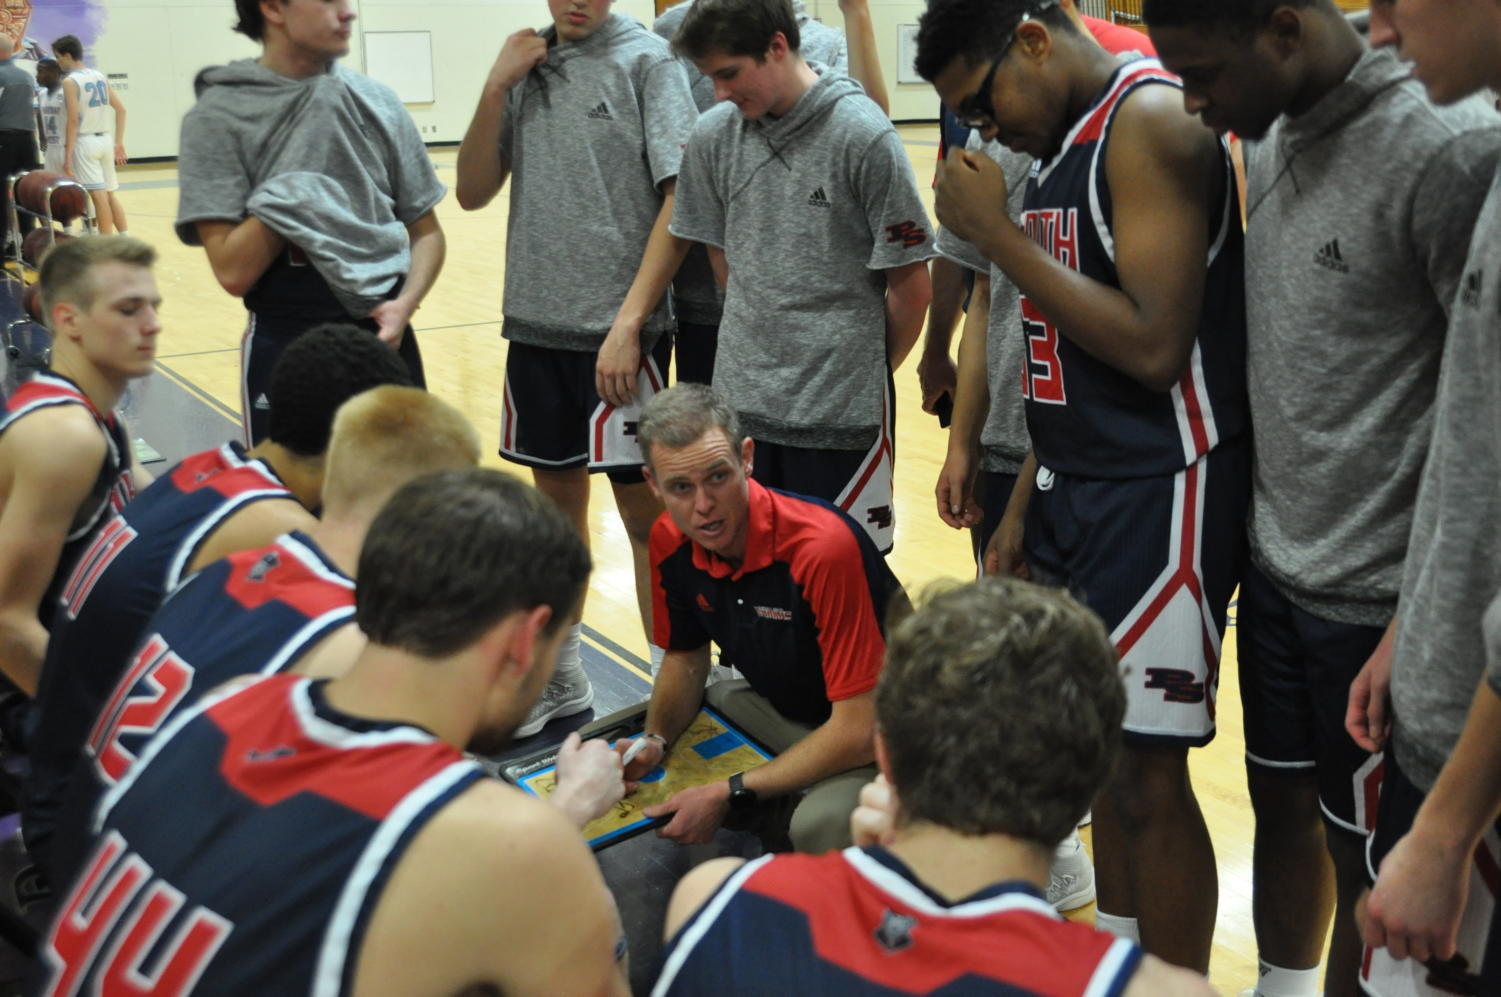 Coach Matt Roach discusses team strategy during a break in the action against West, Nov. 27.